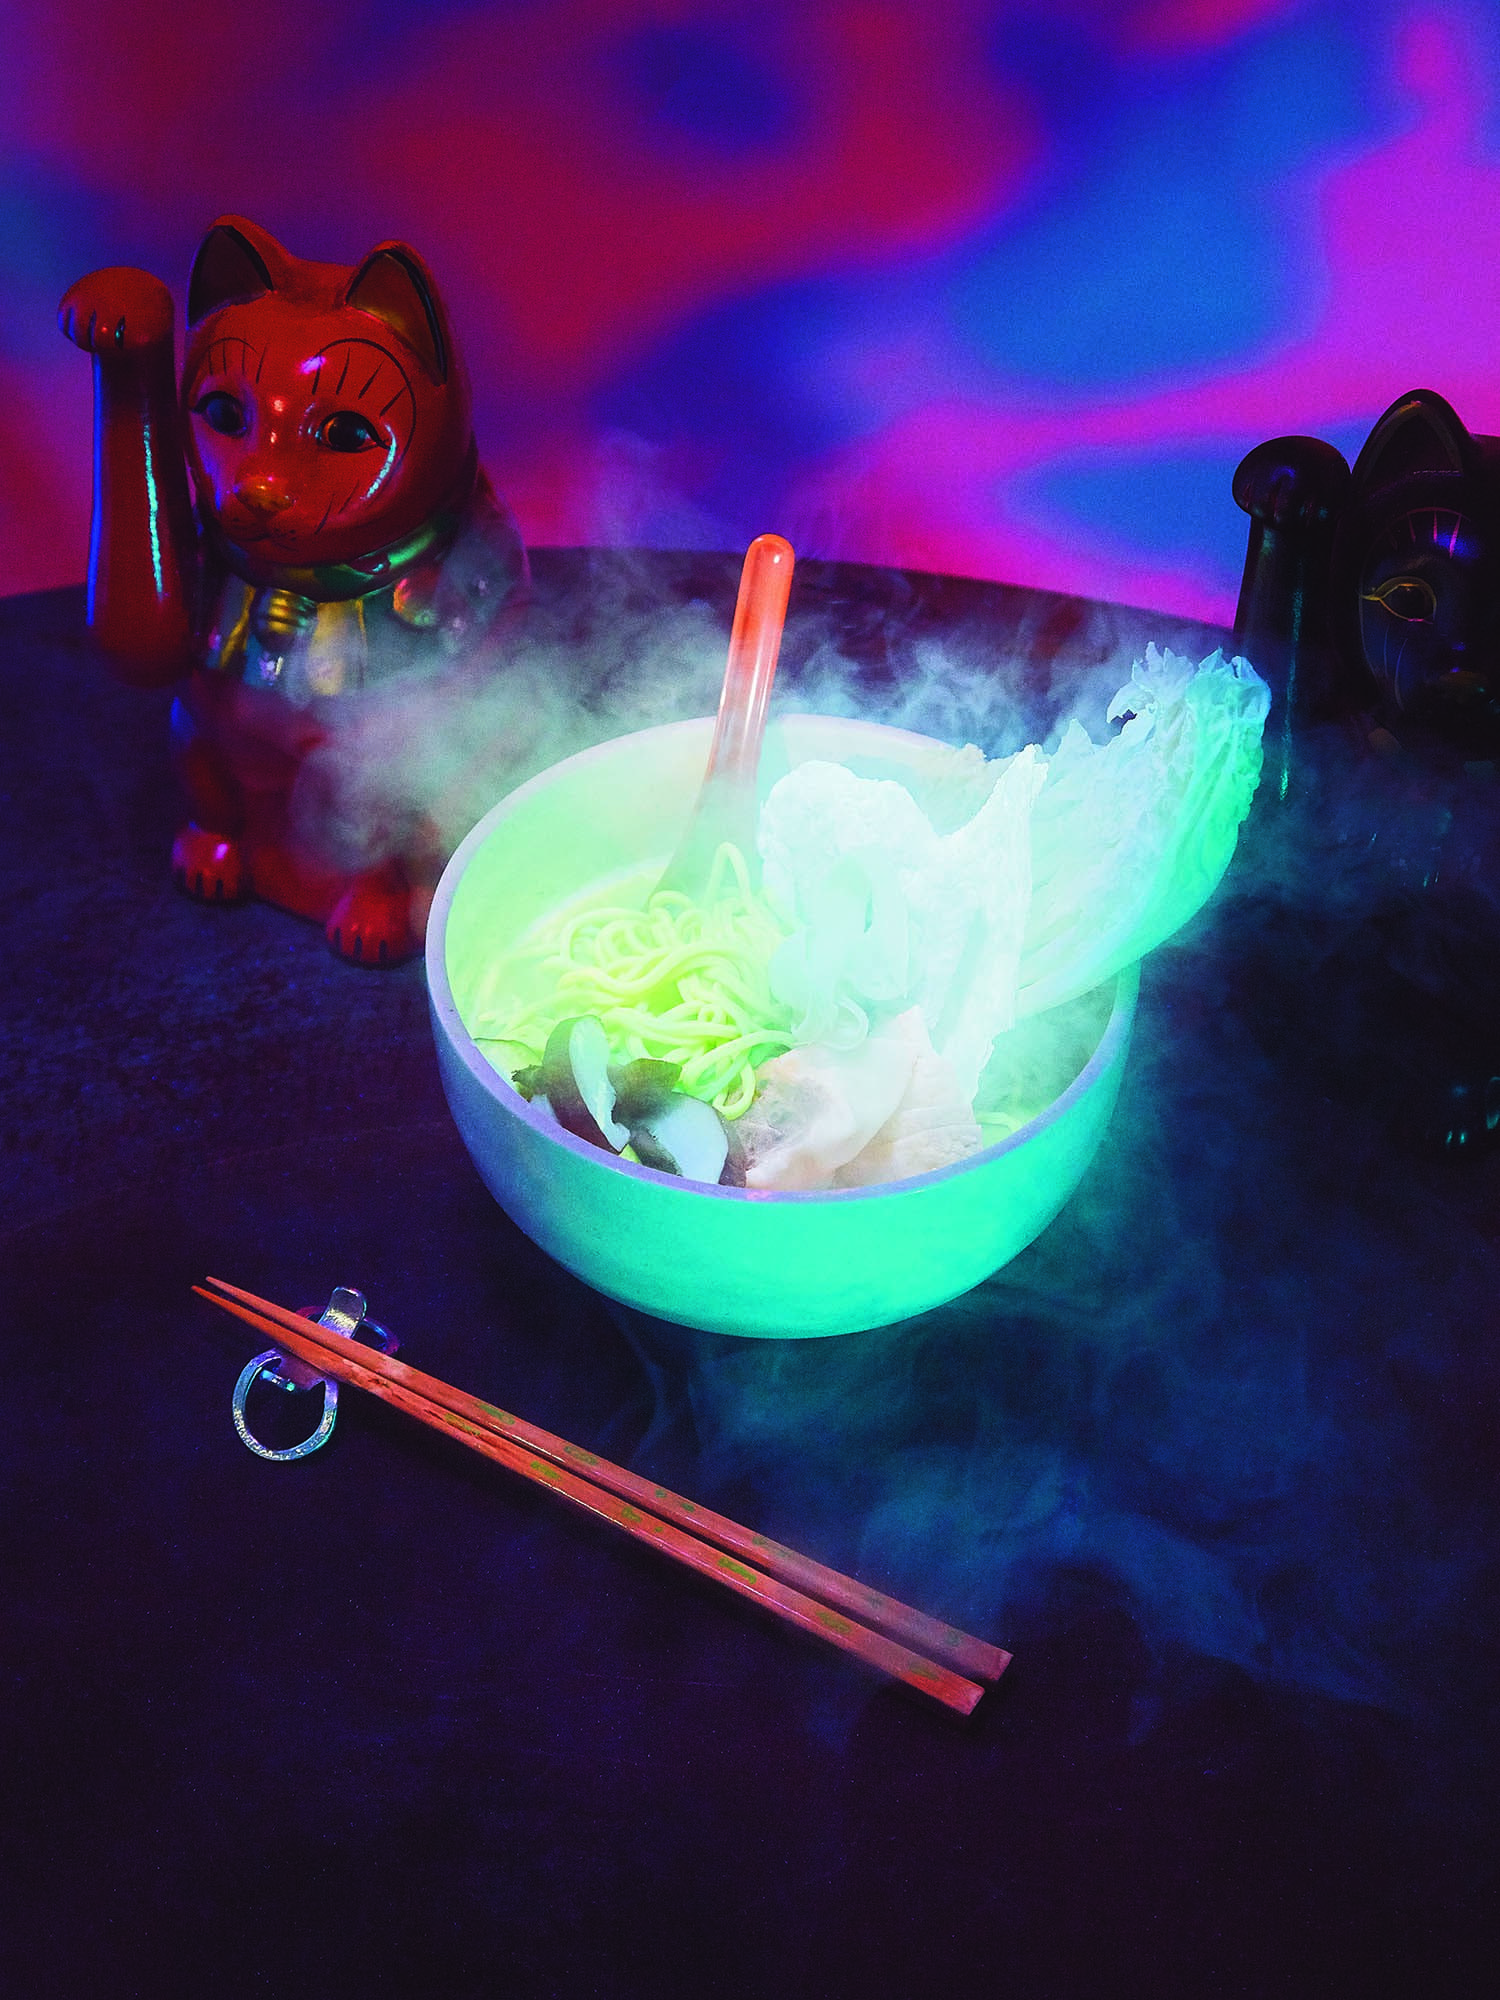 original_01-Bompas-Parr-Zoo-glow-in-the-dark-ramen.jpg